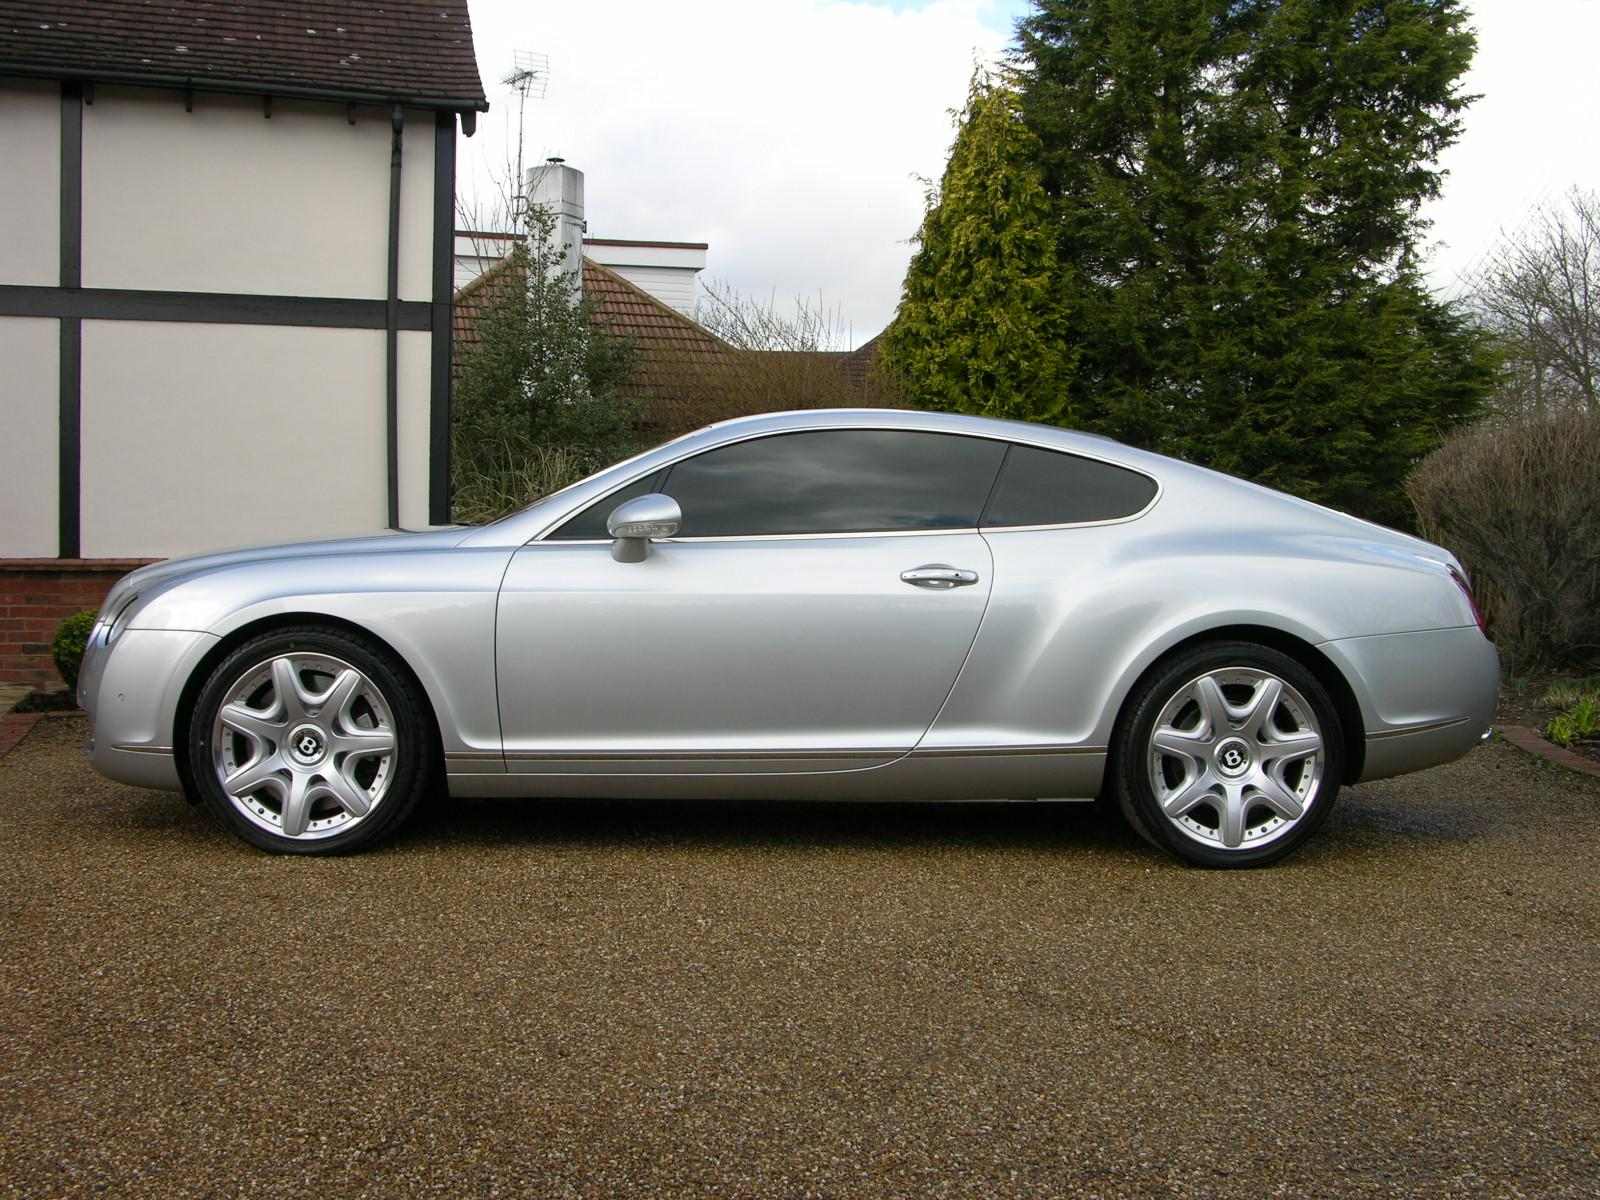 file:2005 bentley continental gt - flickr - the car spy (27)